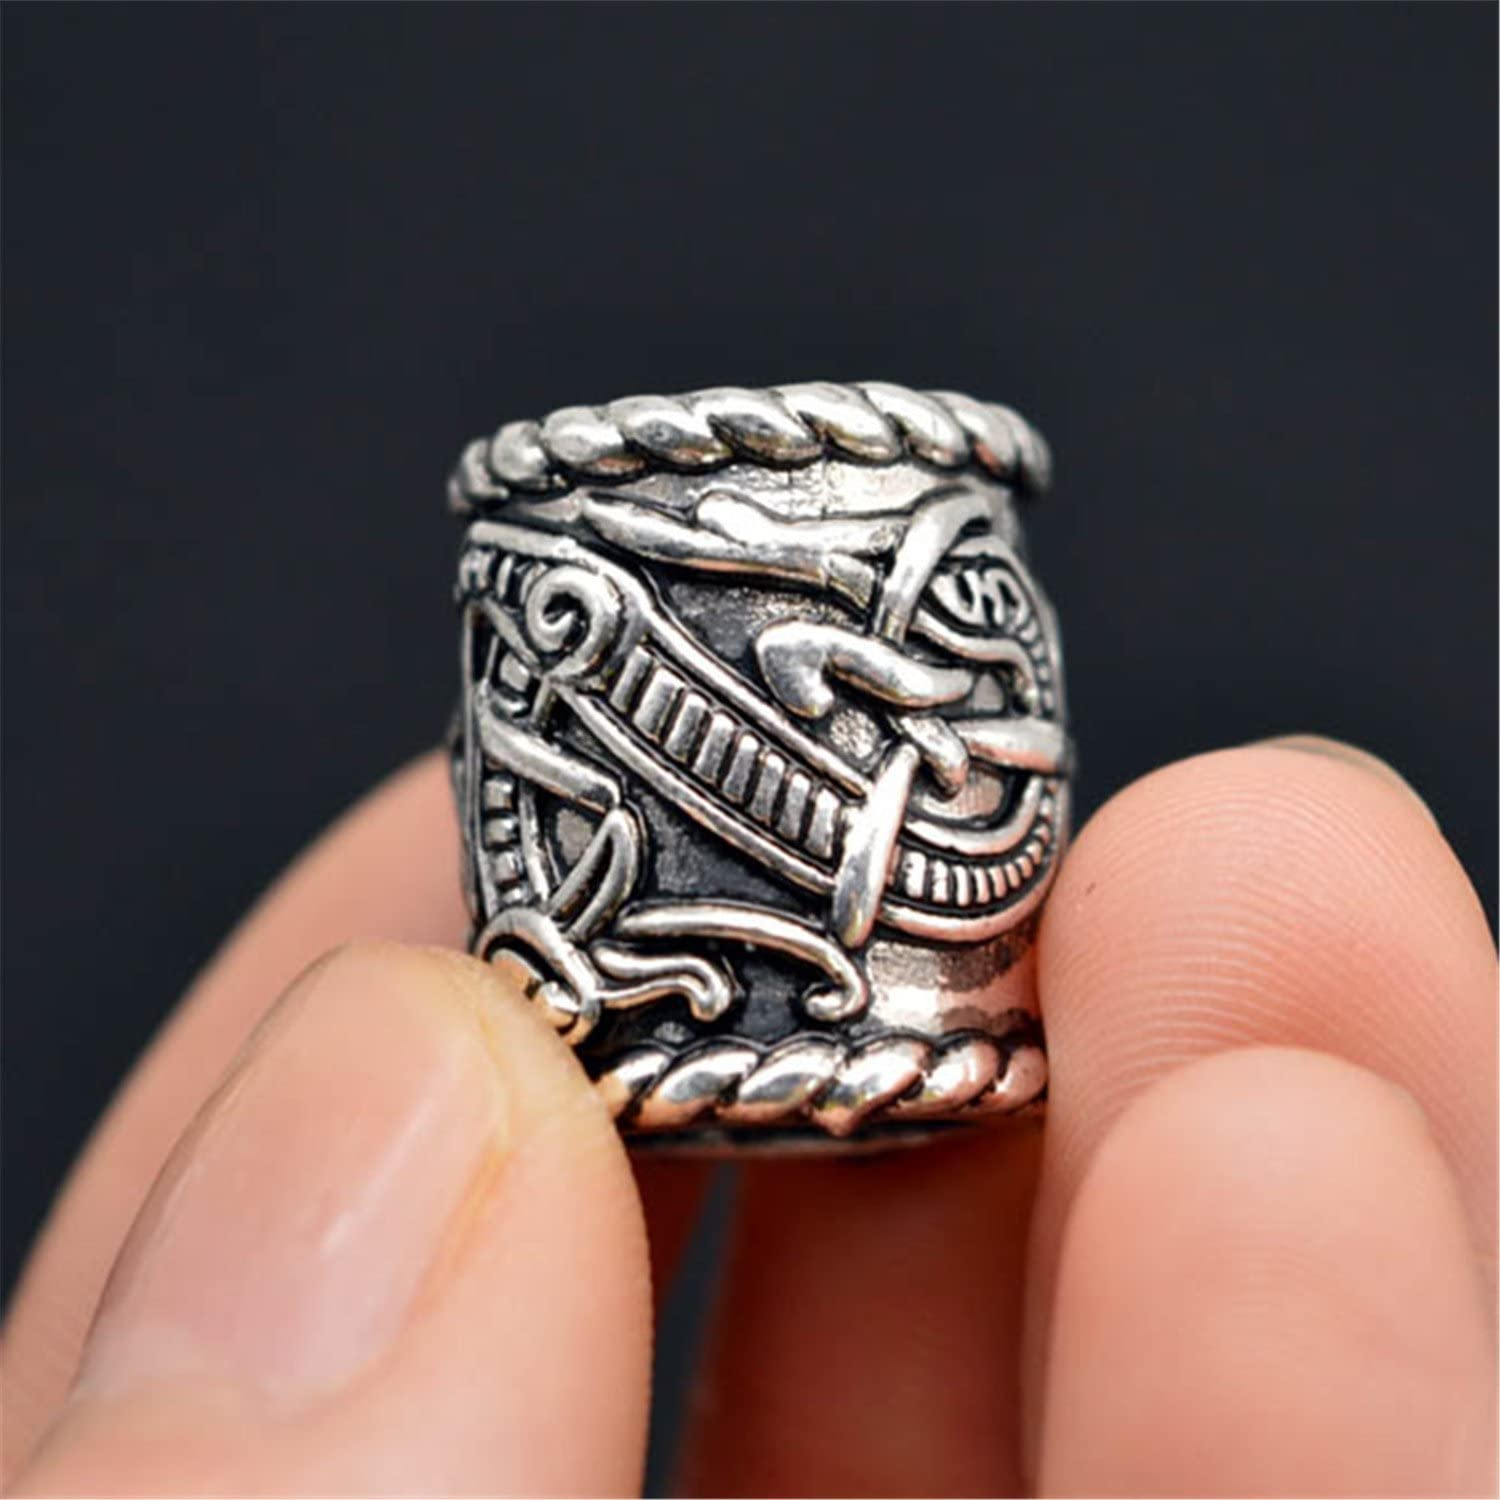 Hair Beards Making GraceAngel 5pcs Norse Viking Rune Scandinavian Beads for Pendant Necklace Bracelet